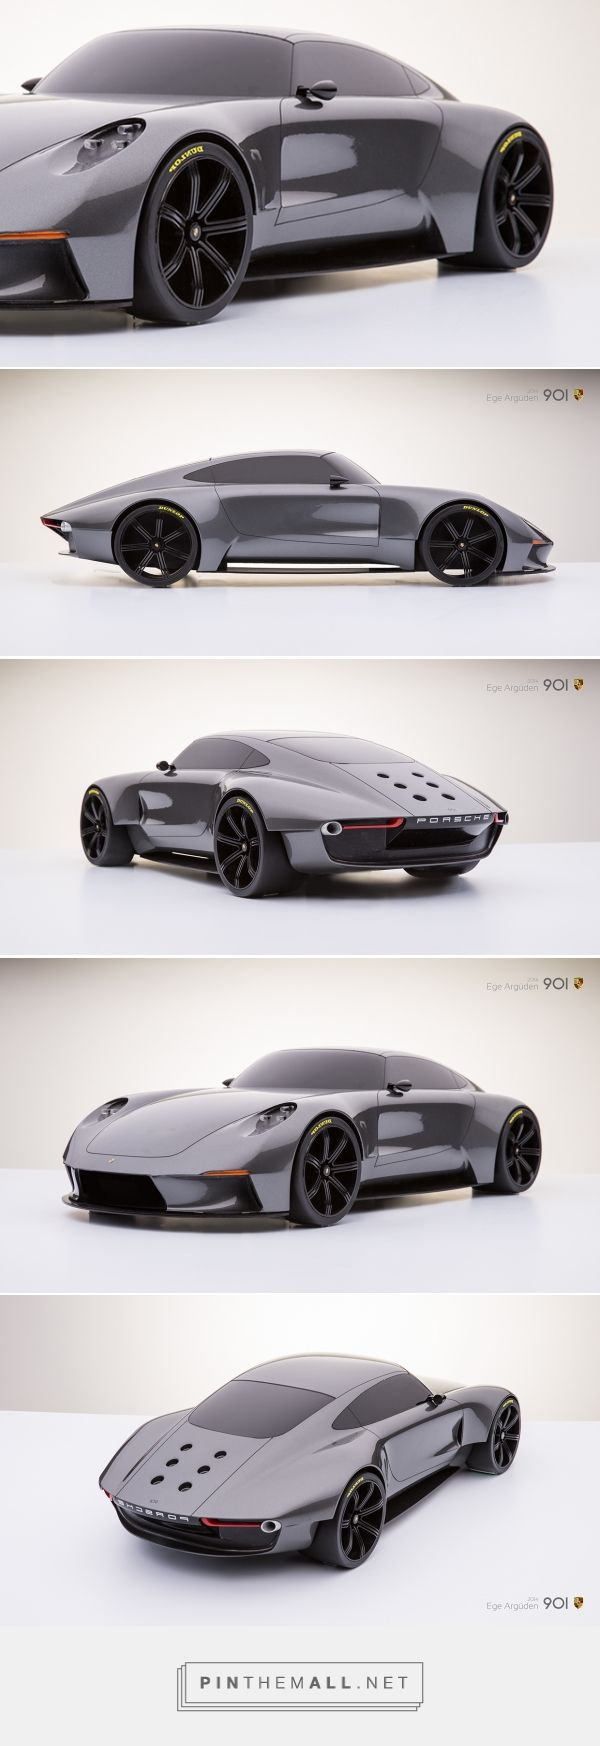 This Retro Inspired Concept Might be the Most Beautiful Porsche Ever! - created via http://pinthemall.net